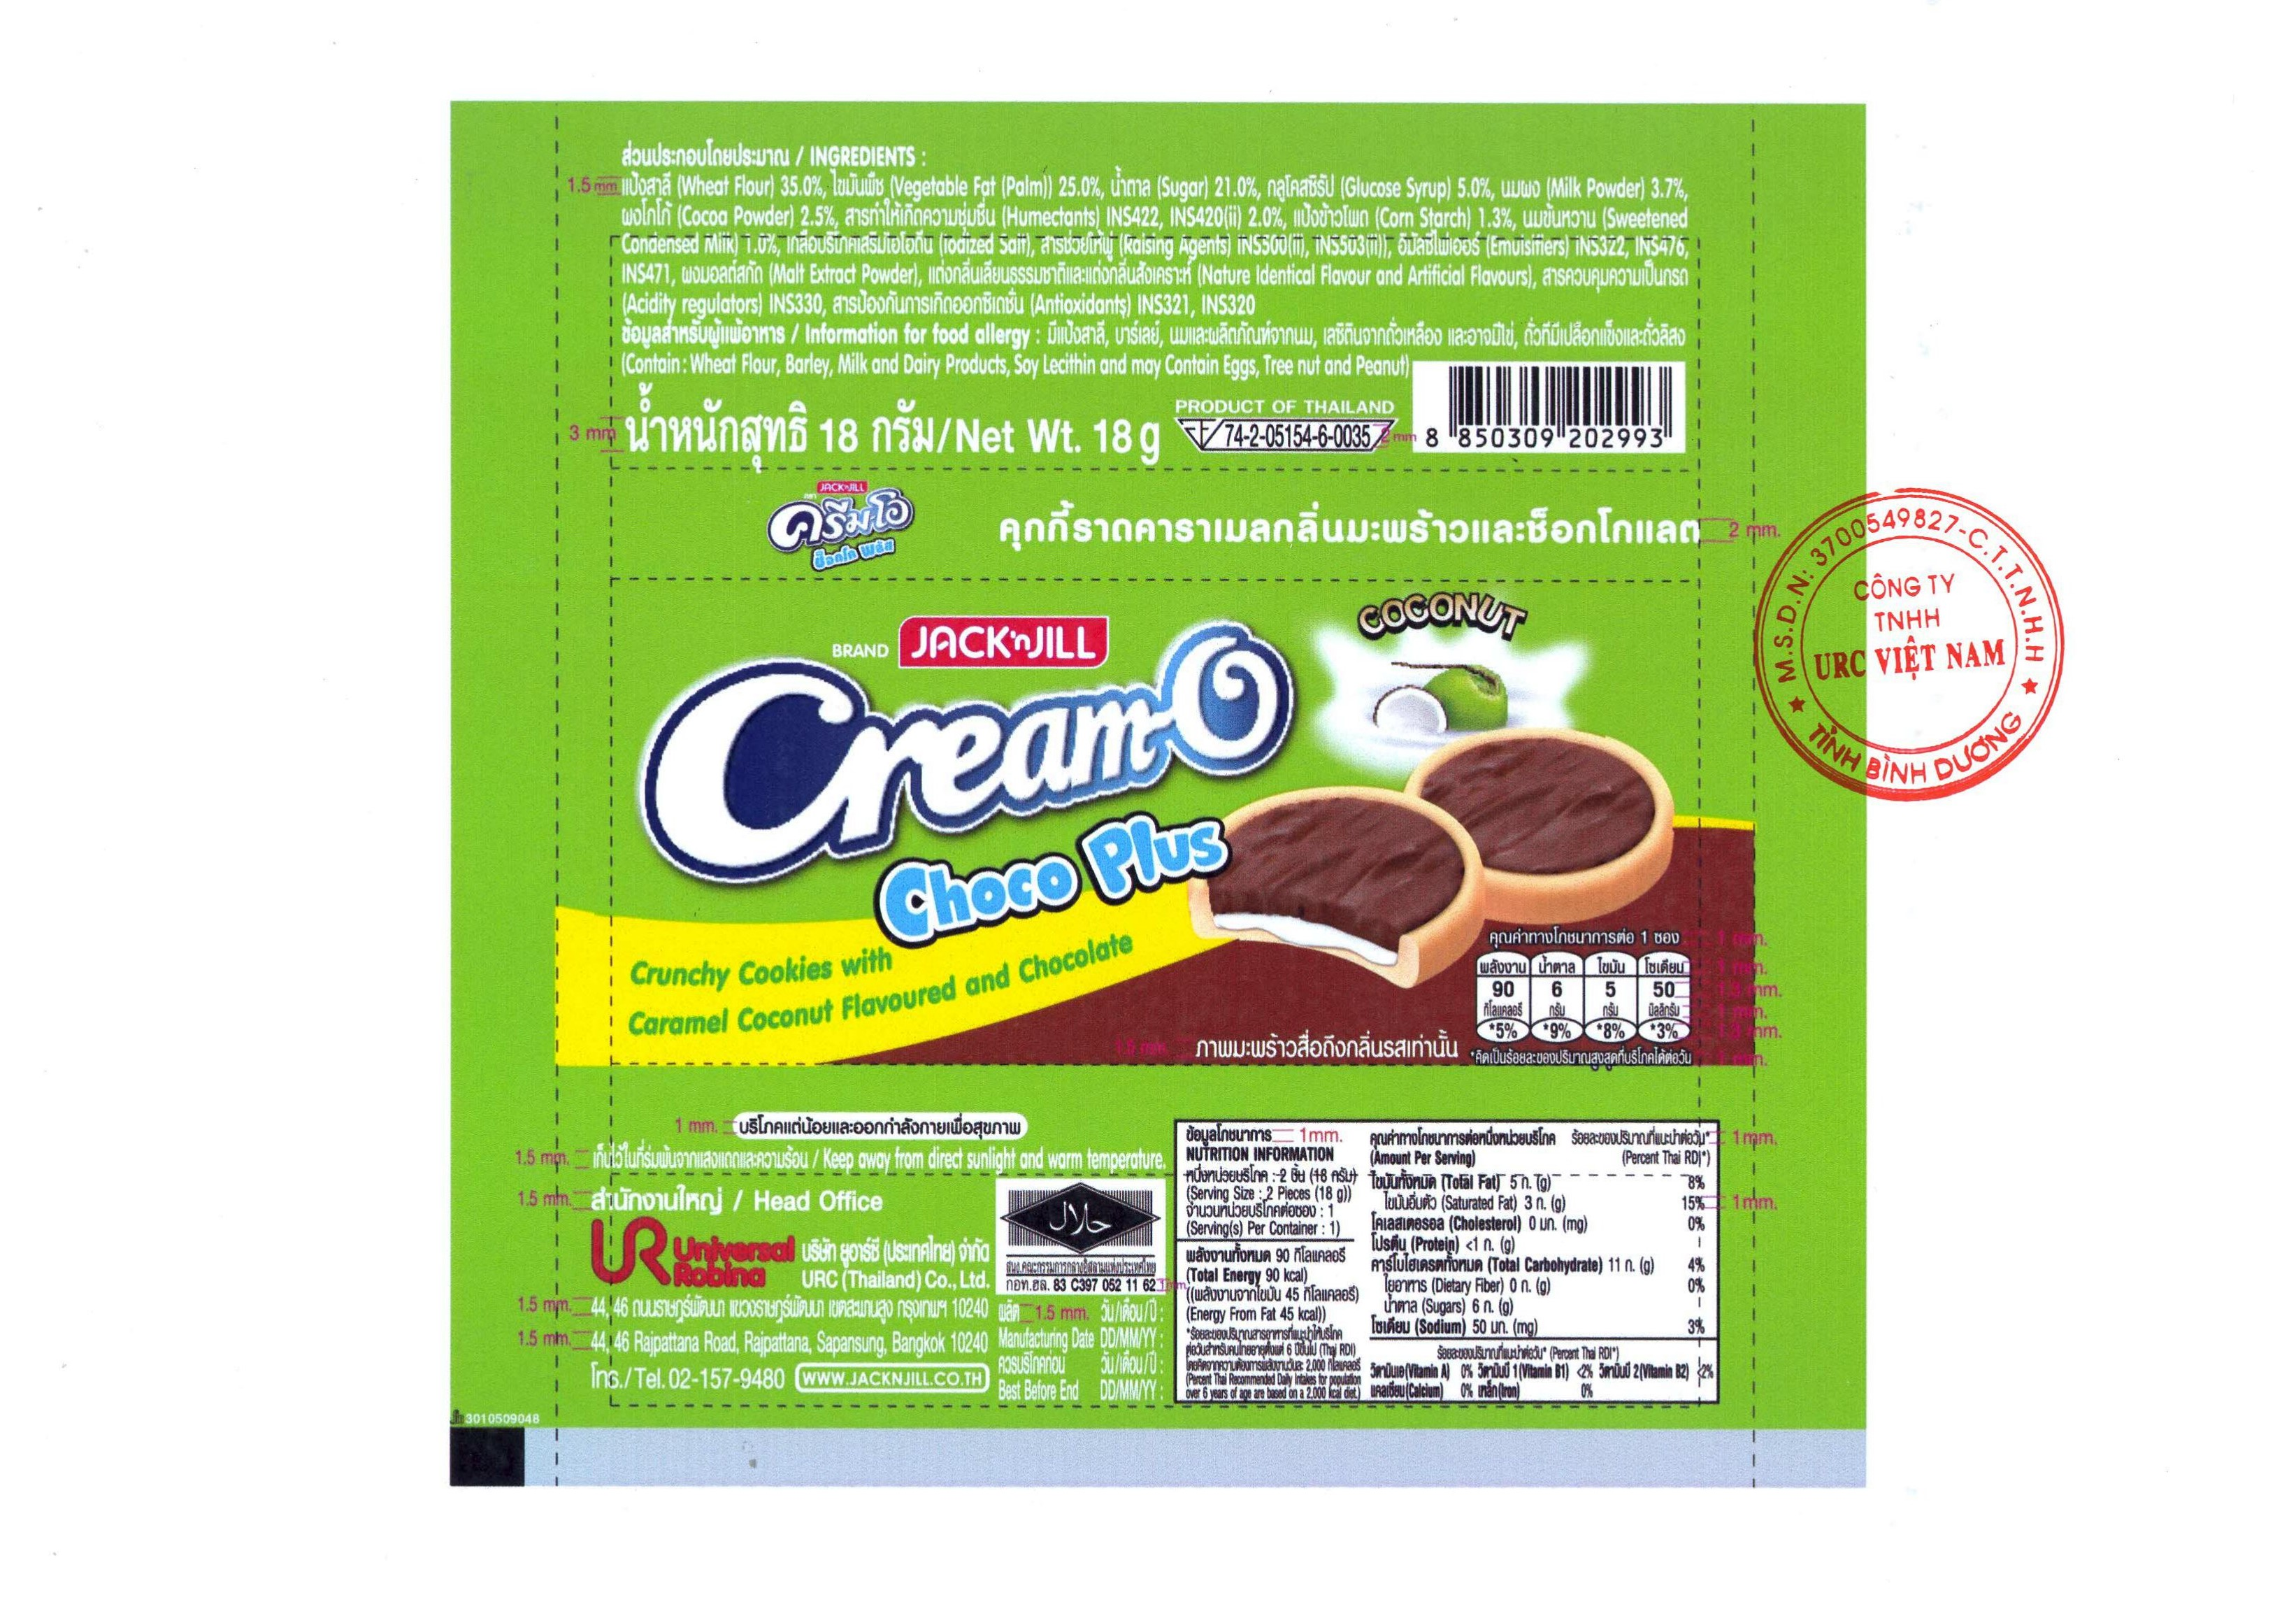 PRODUCT ANNOUNCEMENT CRUNCHY COOKIES WITH COCONUT CARAMEL AND CHOCOLATE BRAND CREAM-O CHOCO PLUS